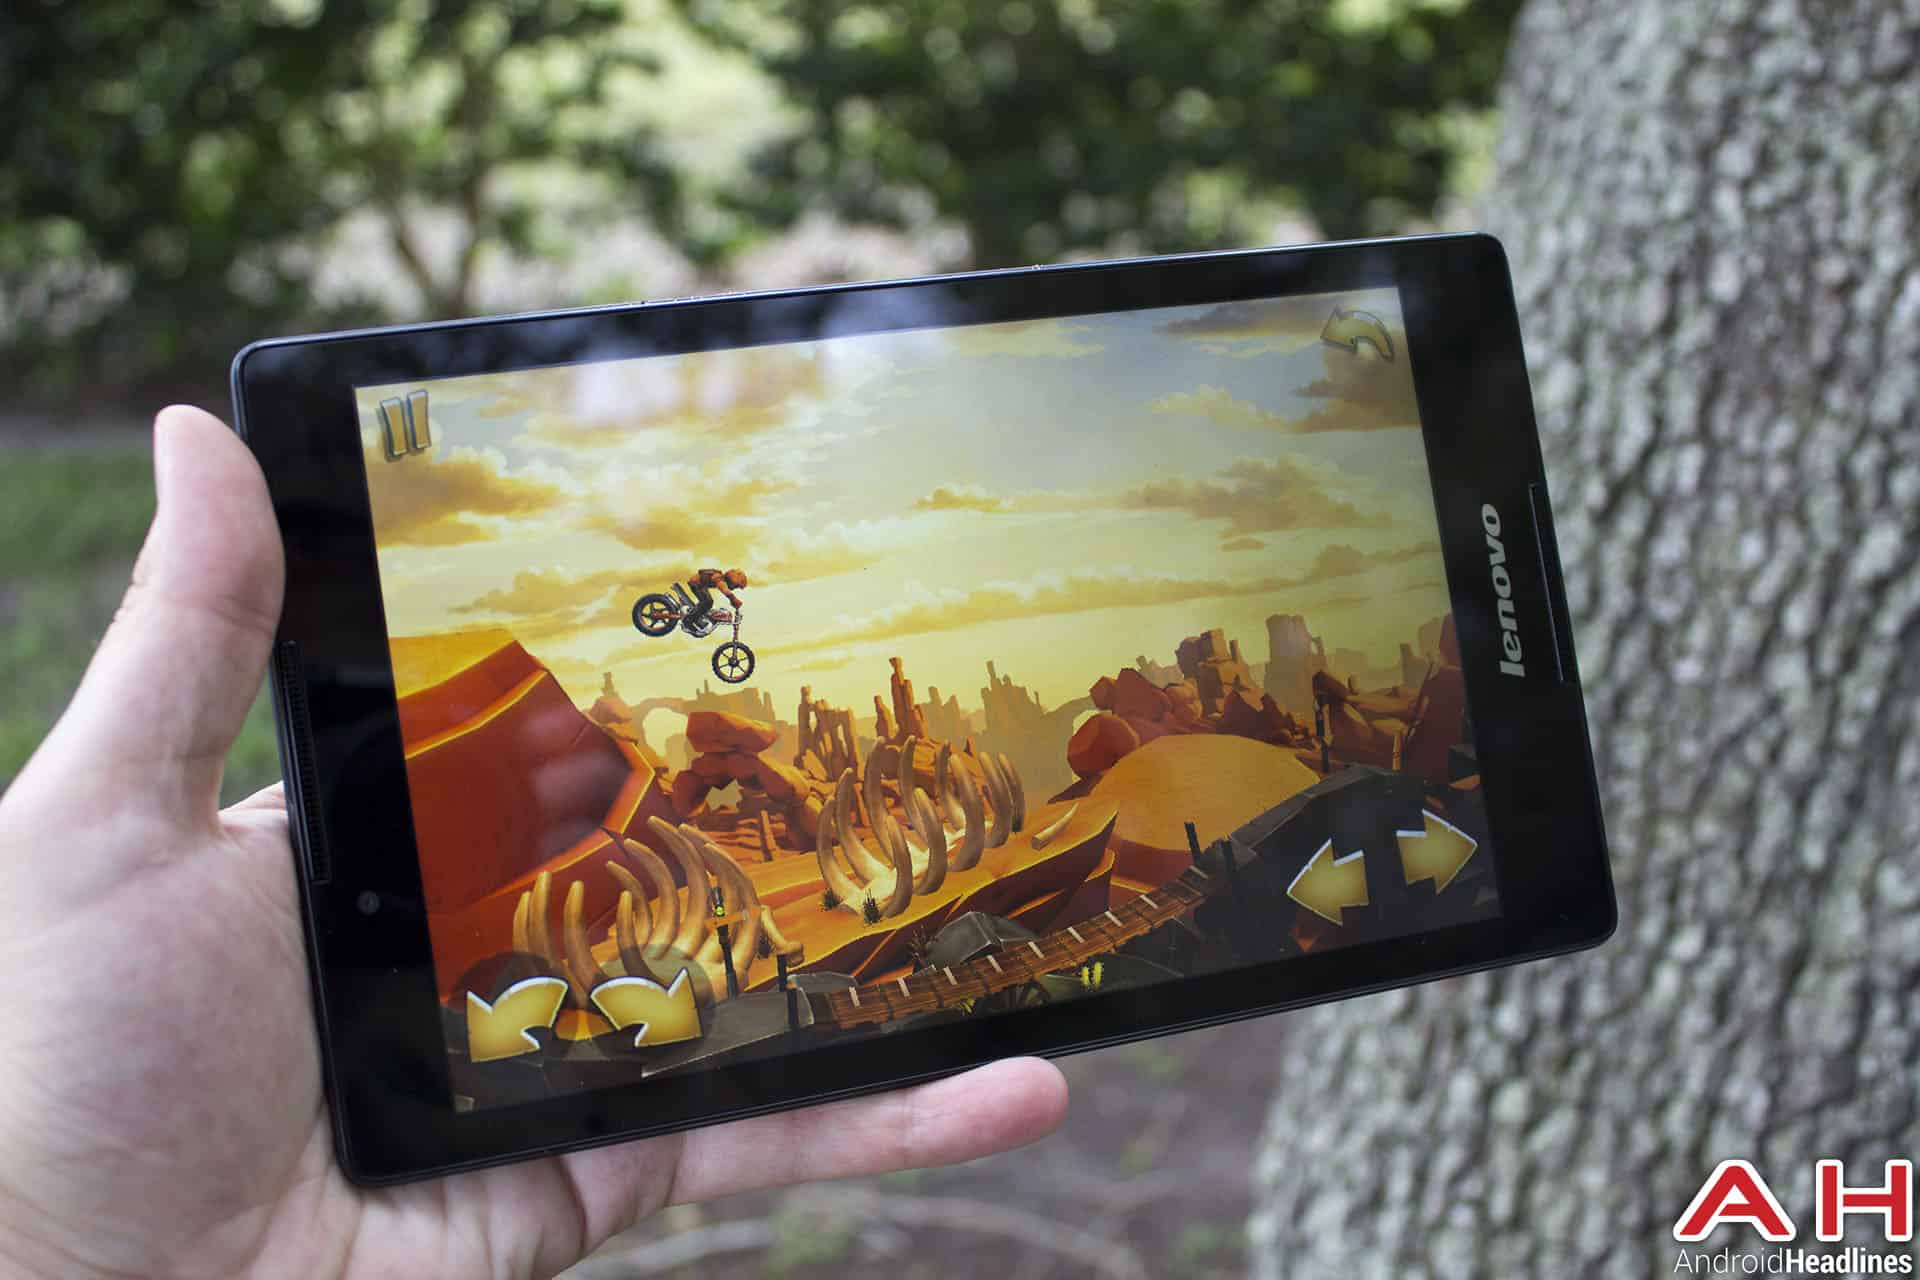 Lenovo-Tab-2-A8-Review-AH-perf